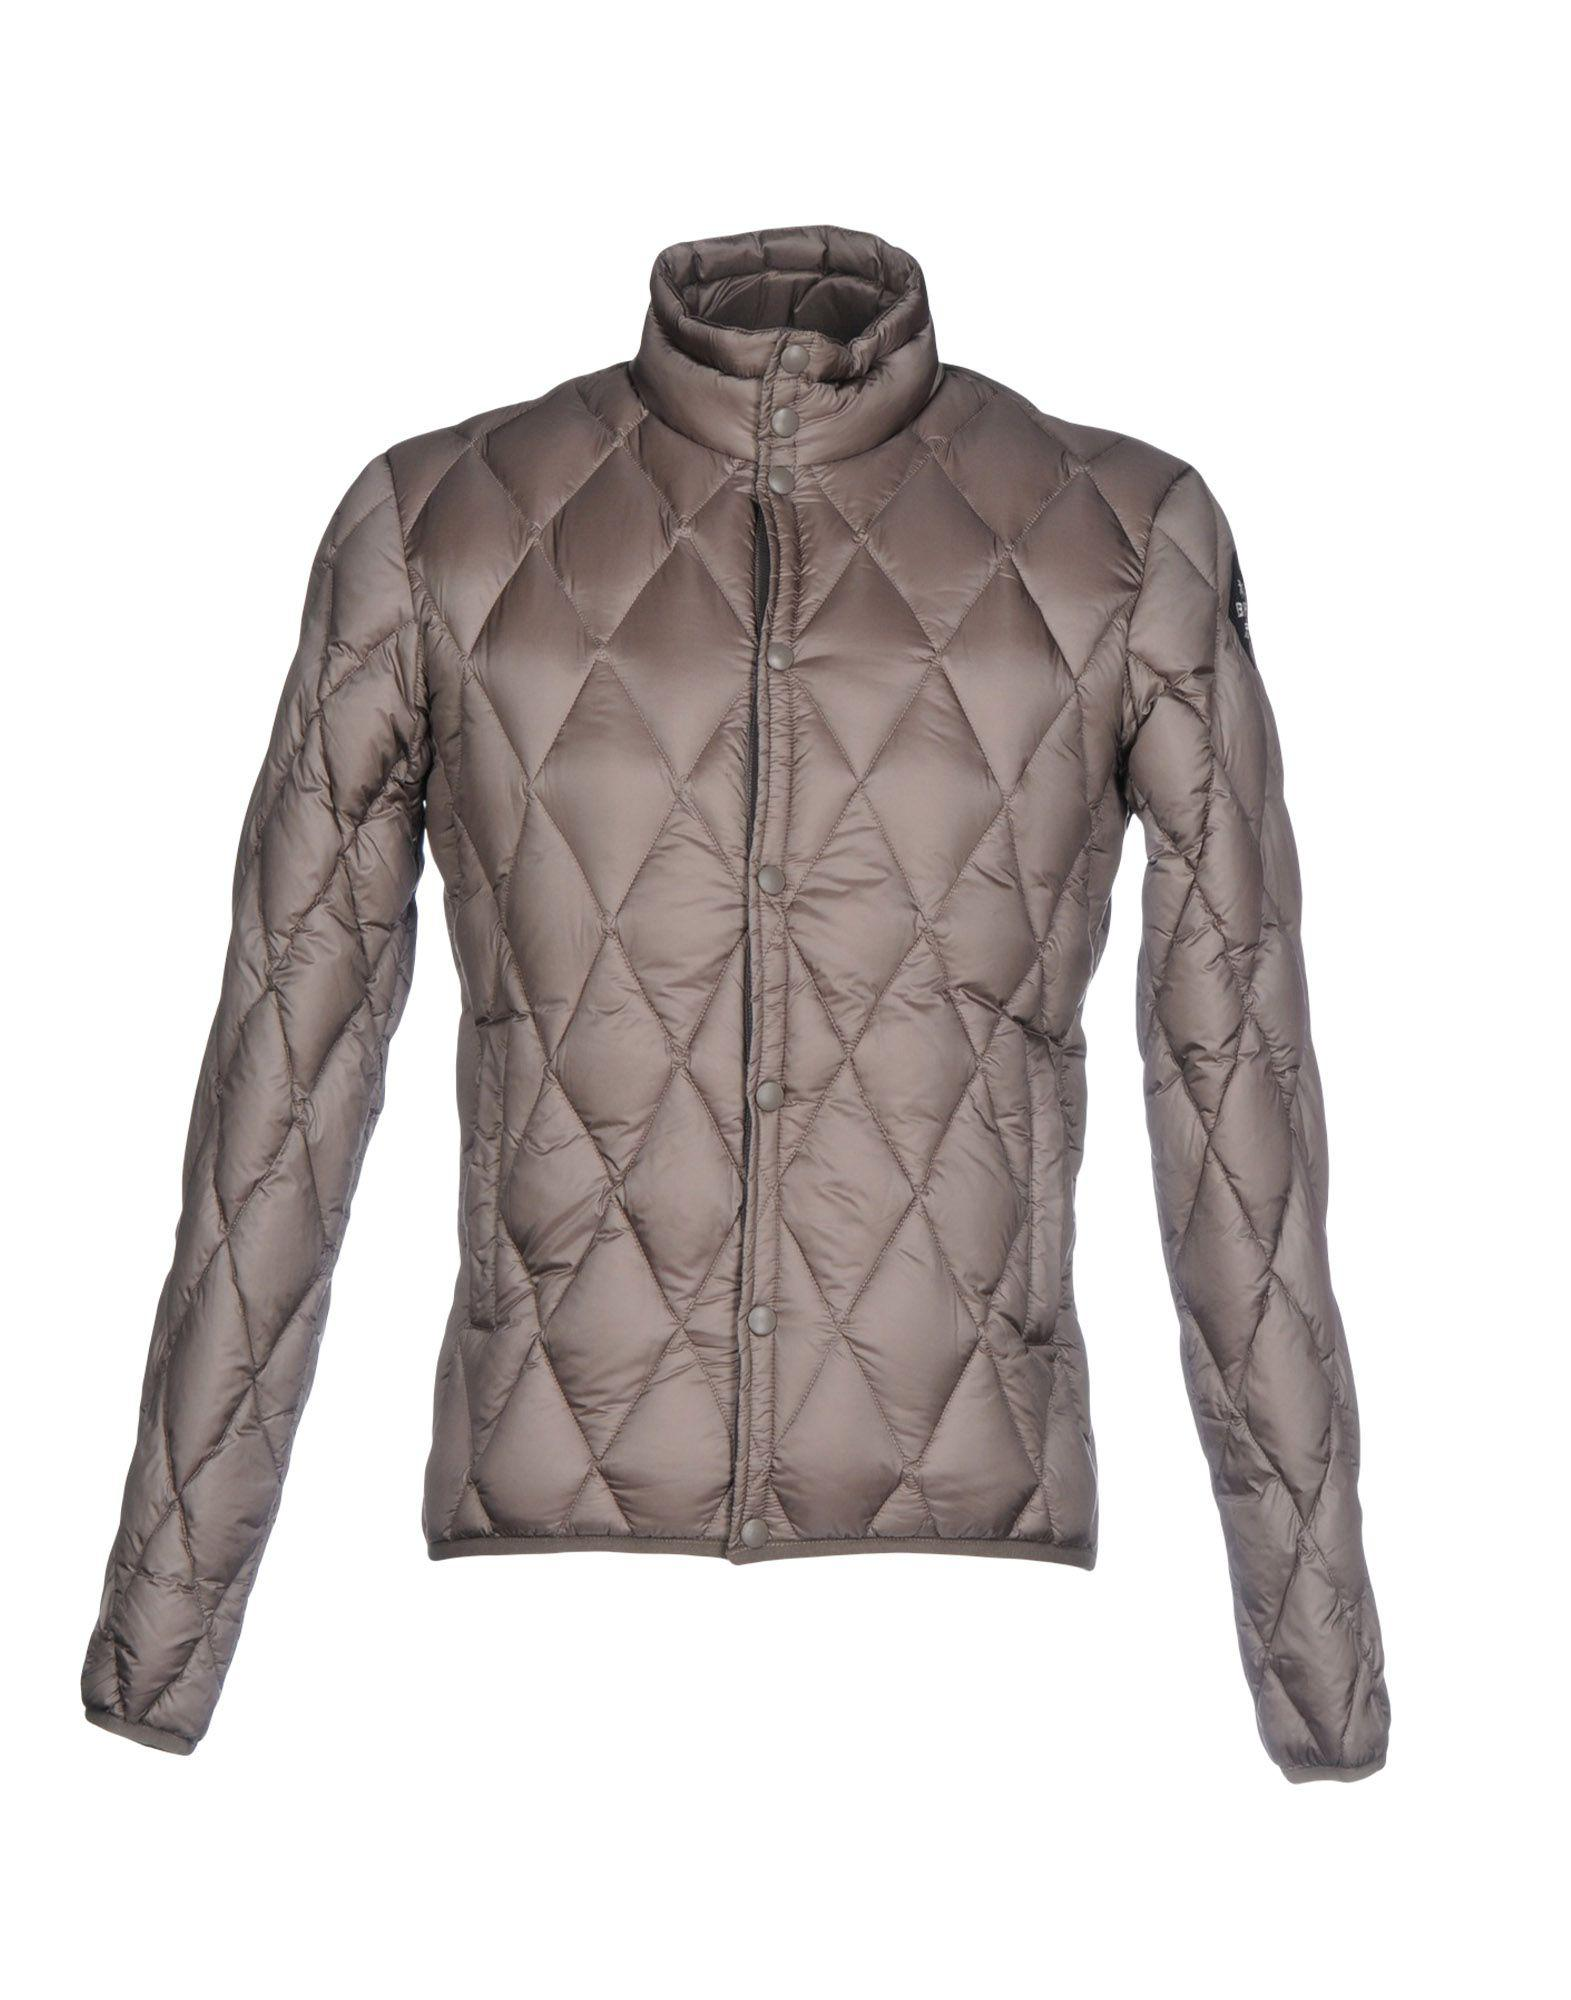 Cheap Sale With Mastercard COATS & JACKETS - Down jackets BPD Be Proud Of This Dress Best Store To Get Cheap Online NN0ZxkTnO